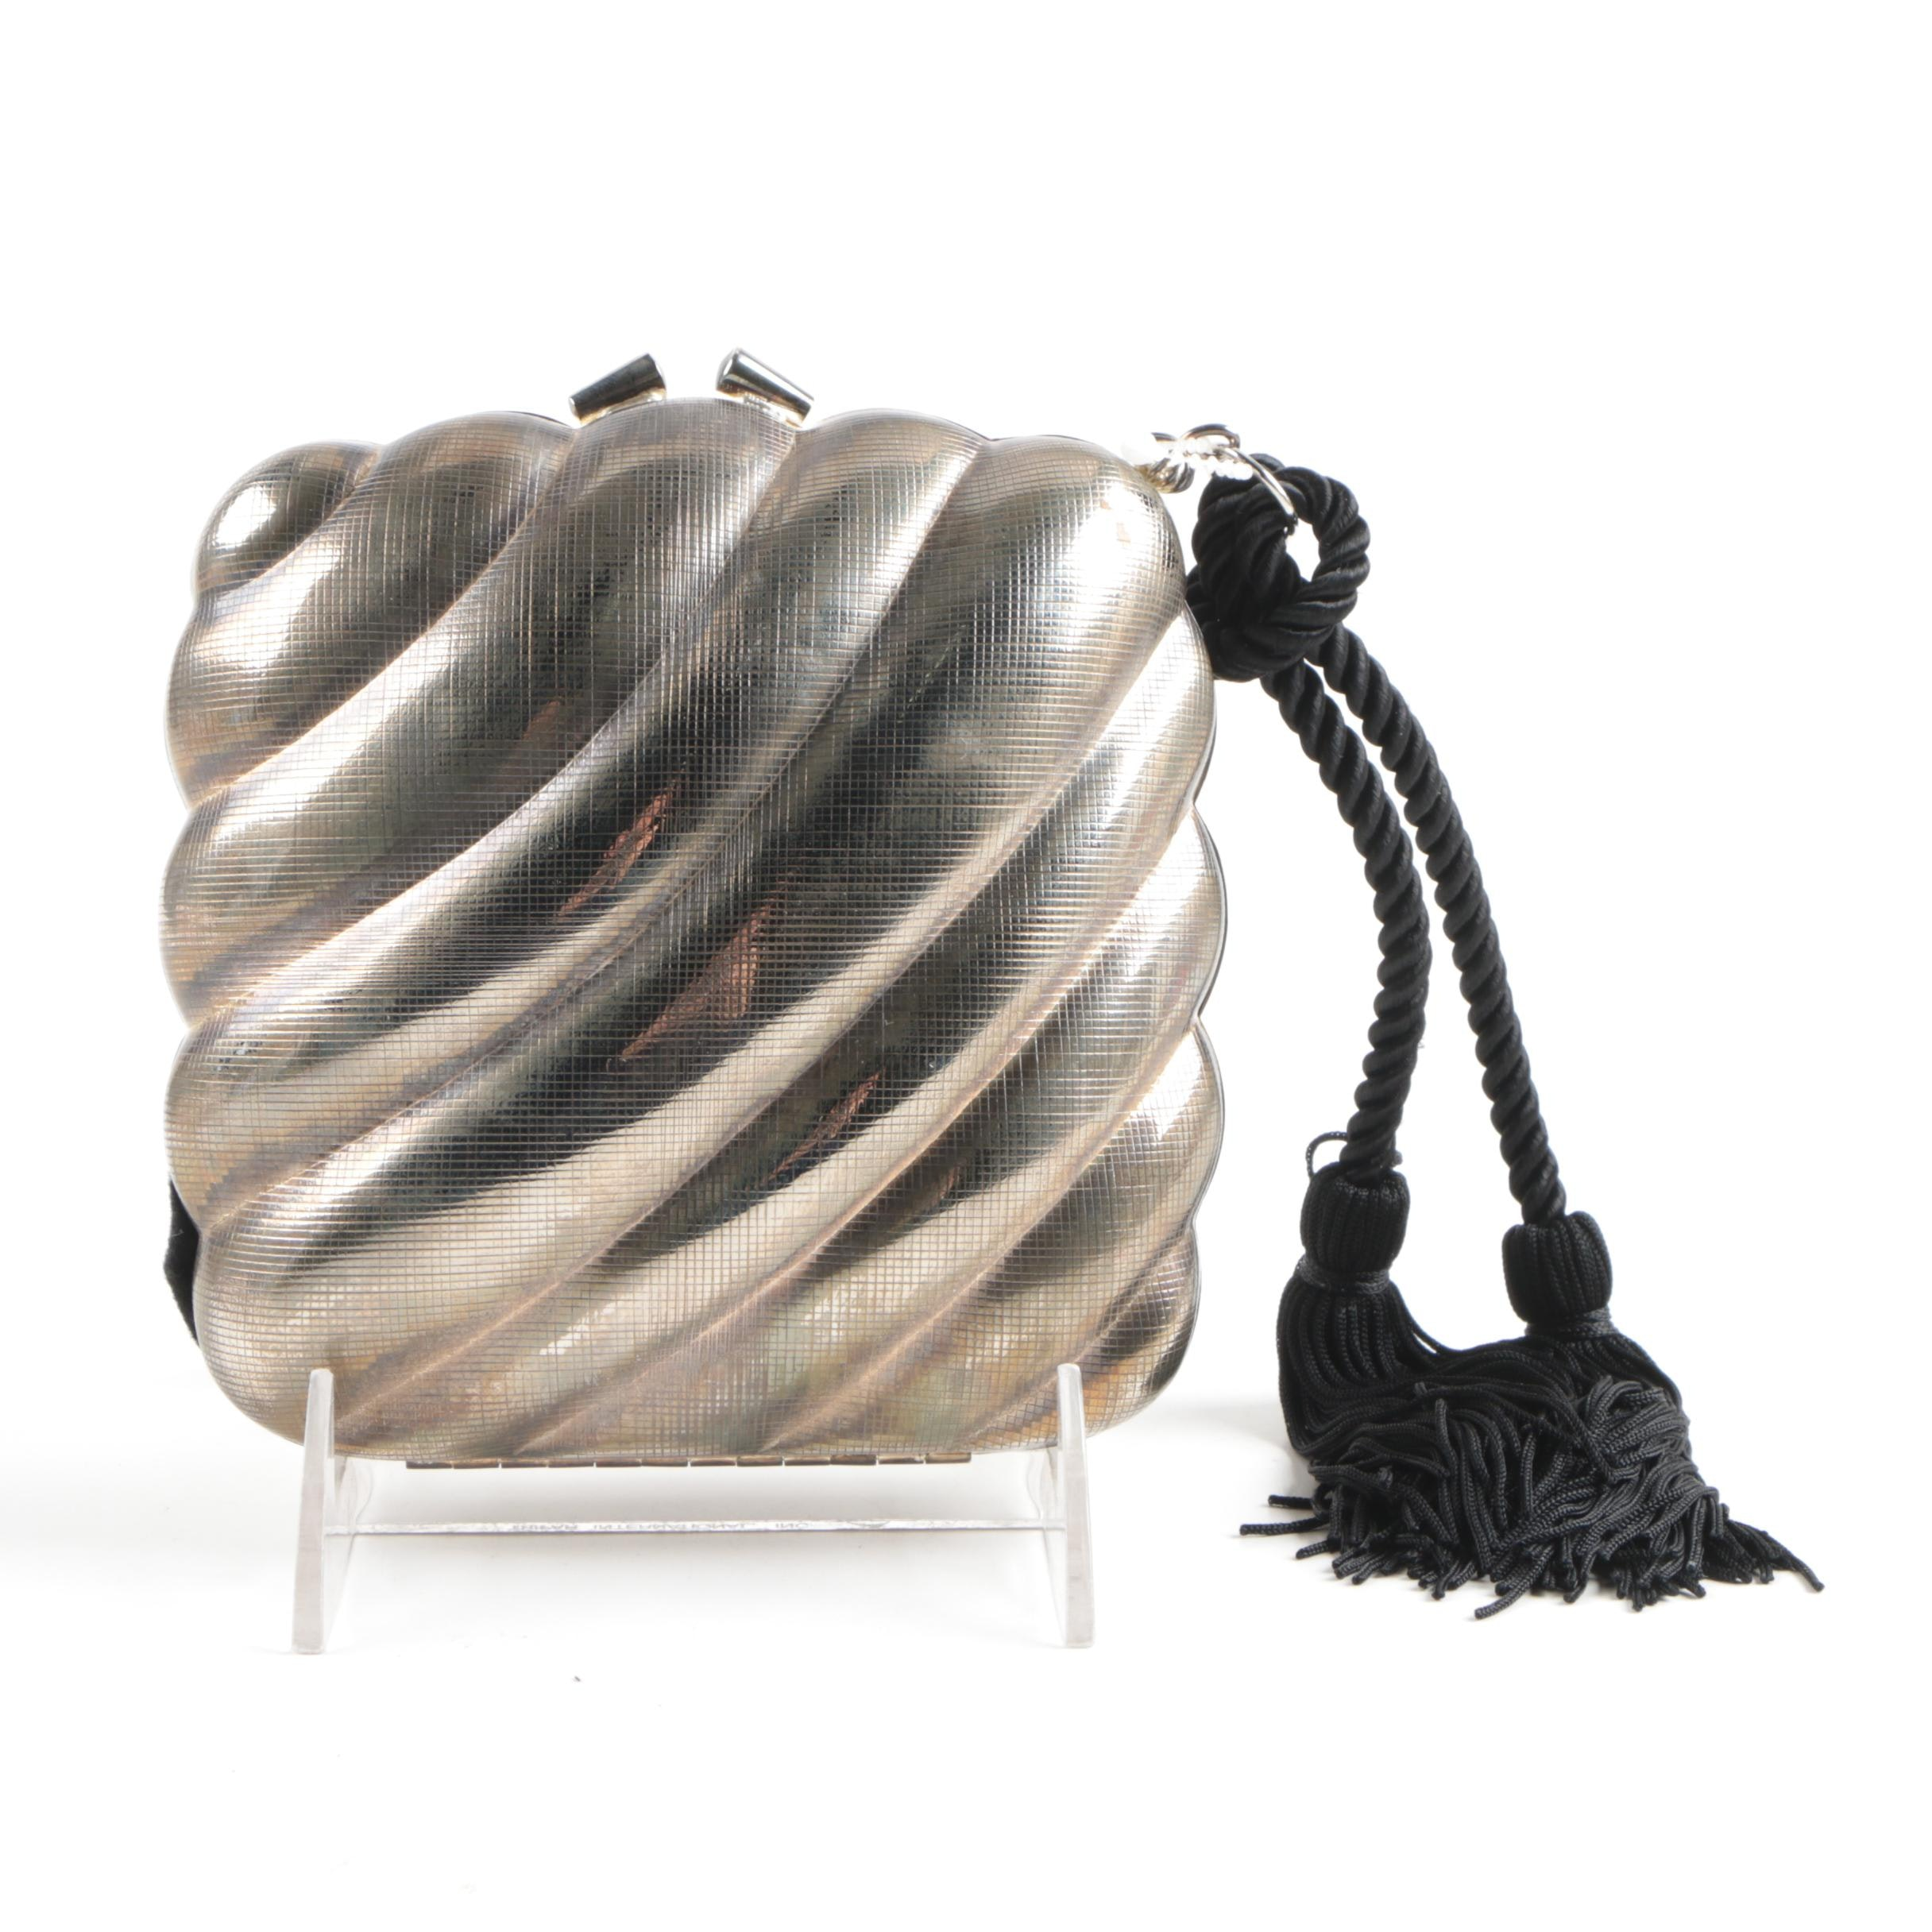 Metallic Evening Clutch with Tassel Accent